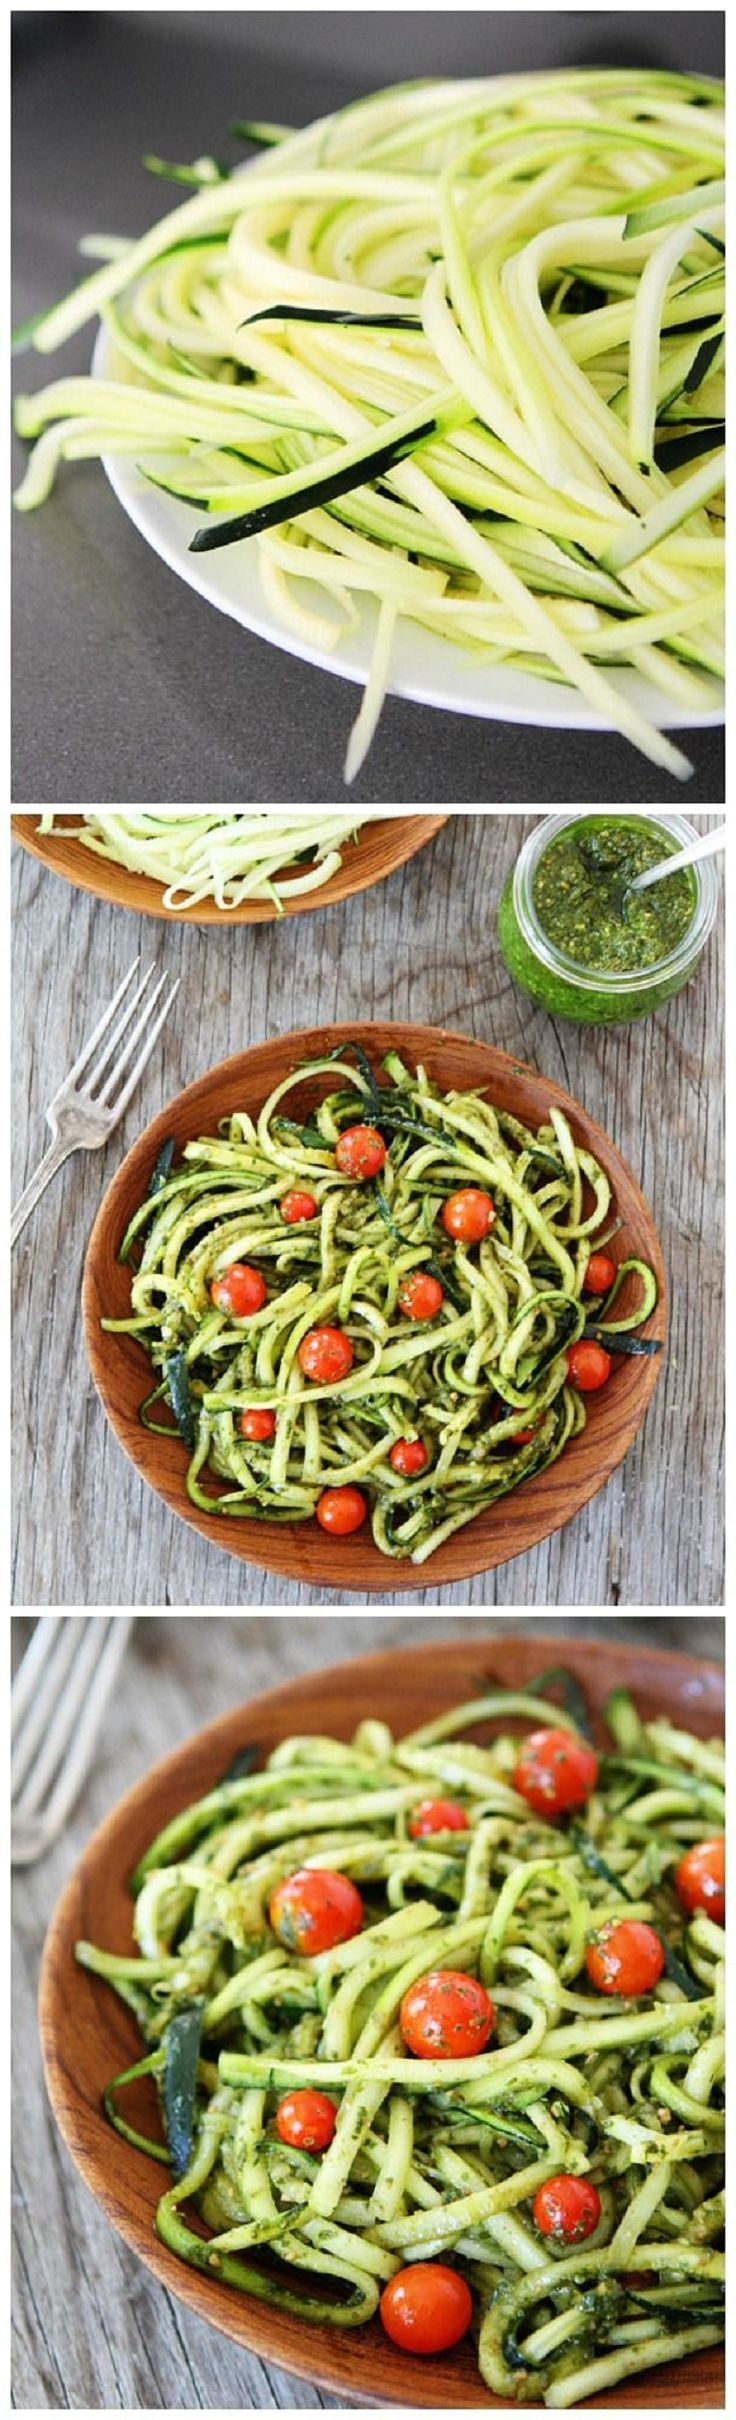 Zucchini Noodles with Pesto - 16 Skinny Lunch Ideas | GleamItUp